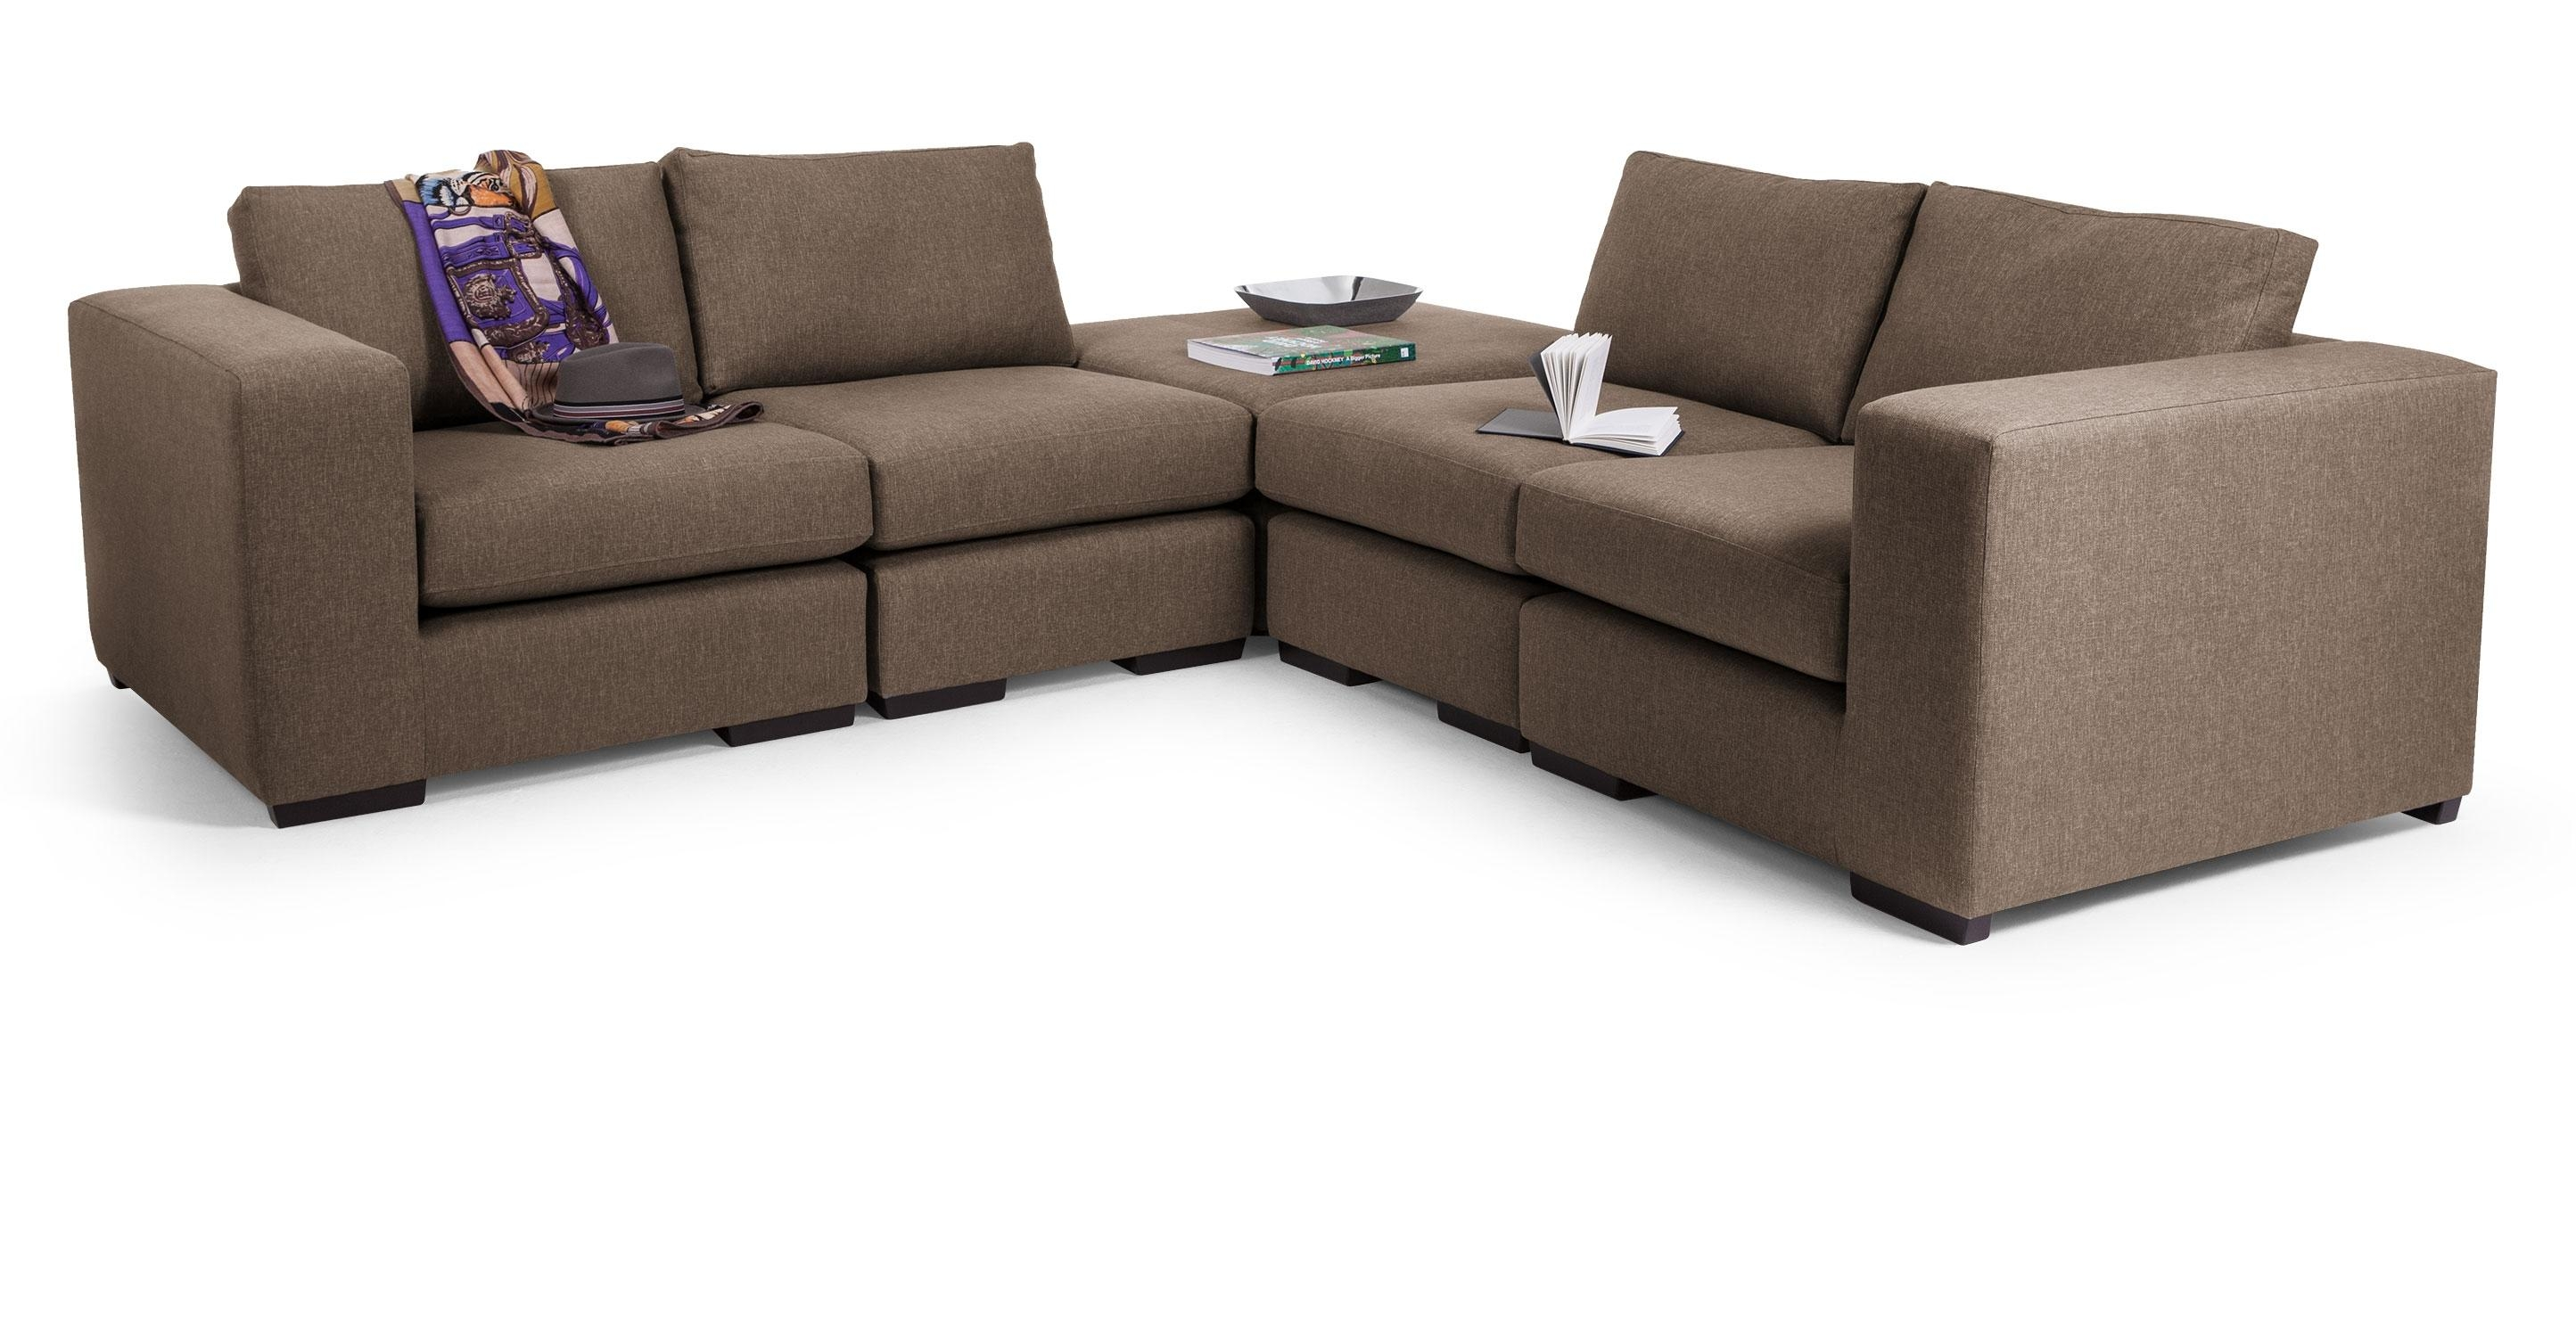 Buy Union Black Leather Modular Corner Sofas At Furniture Choice Regarding Black Leather Corner Sofas (View 8 of 20)